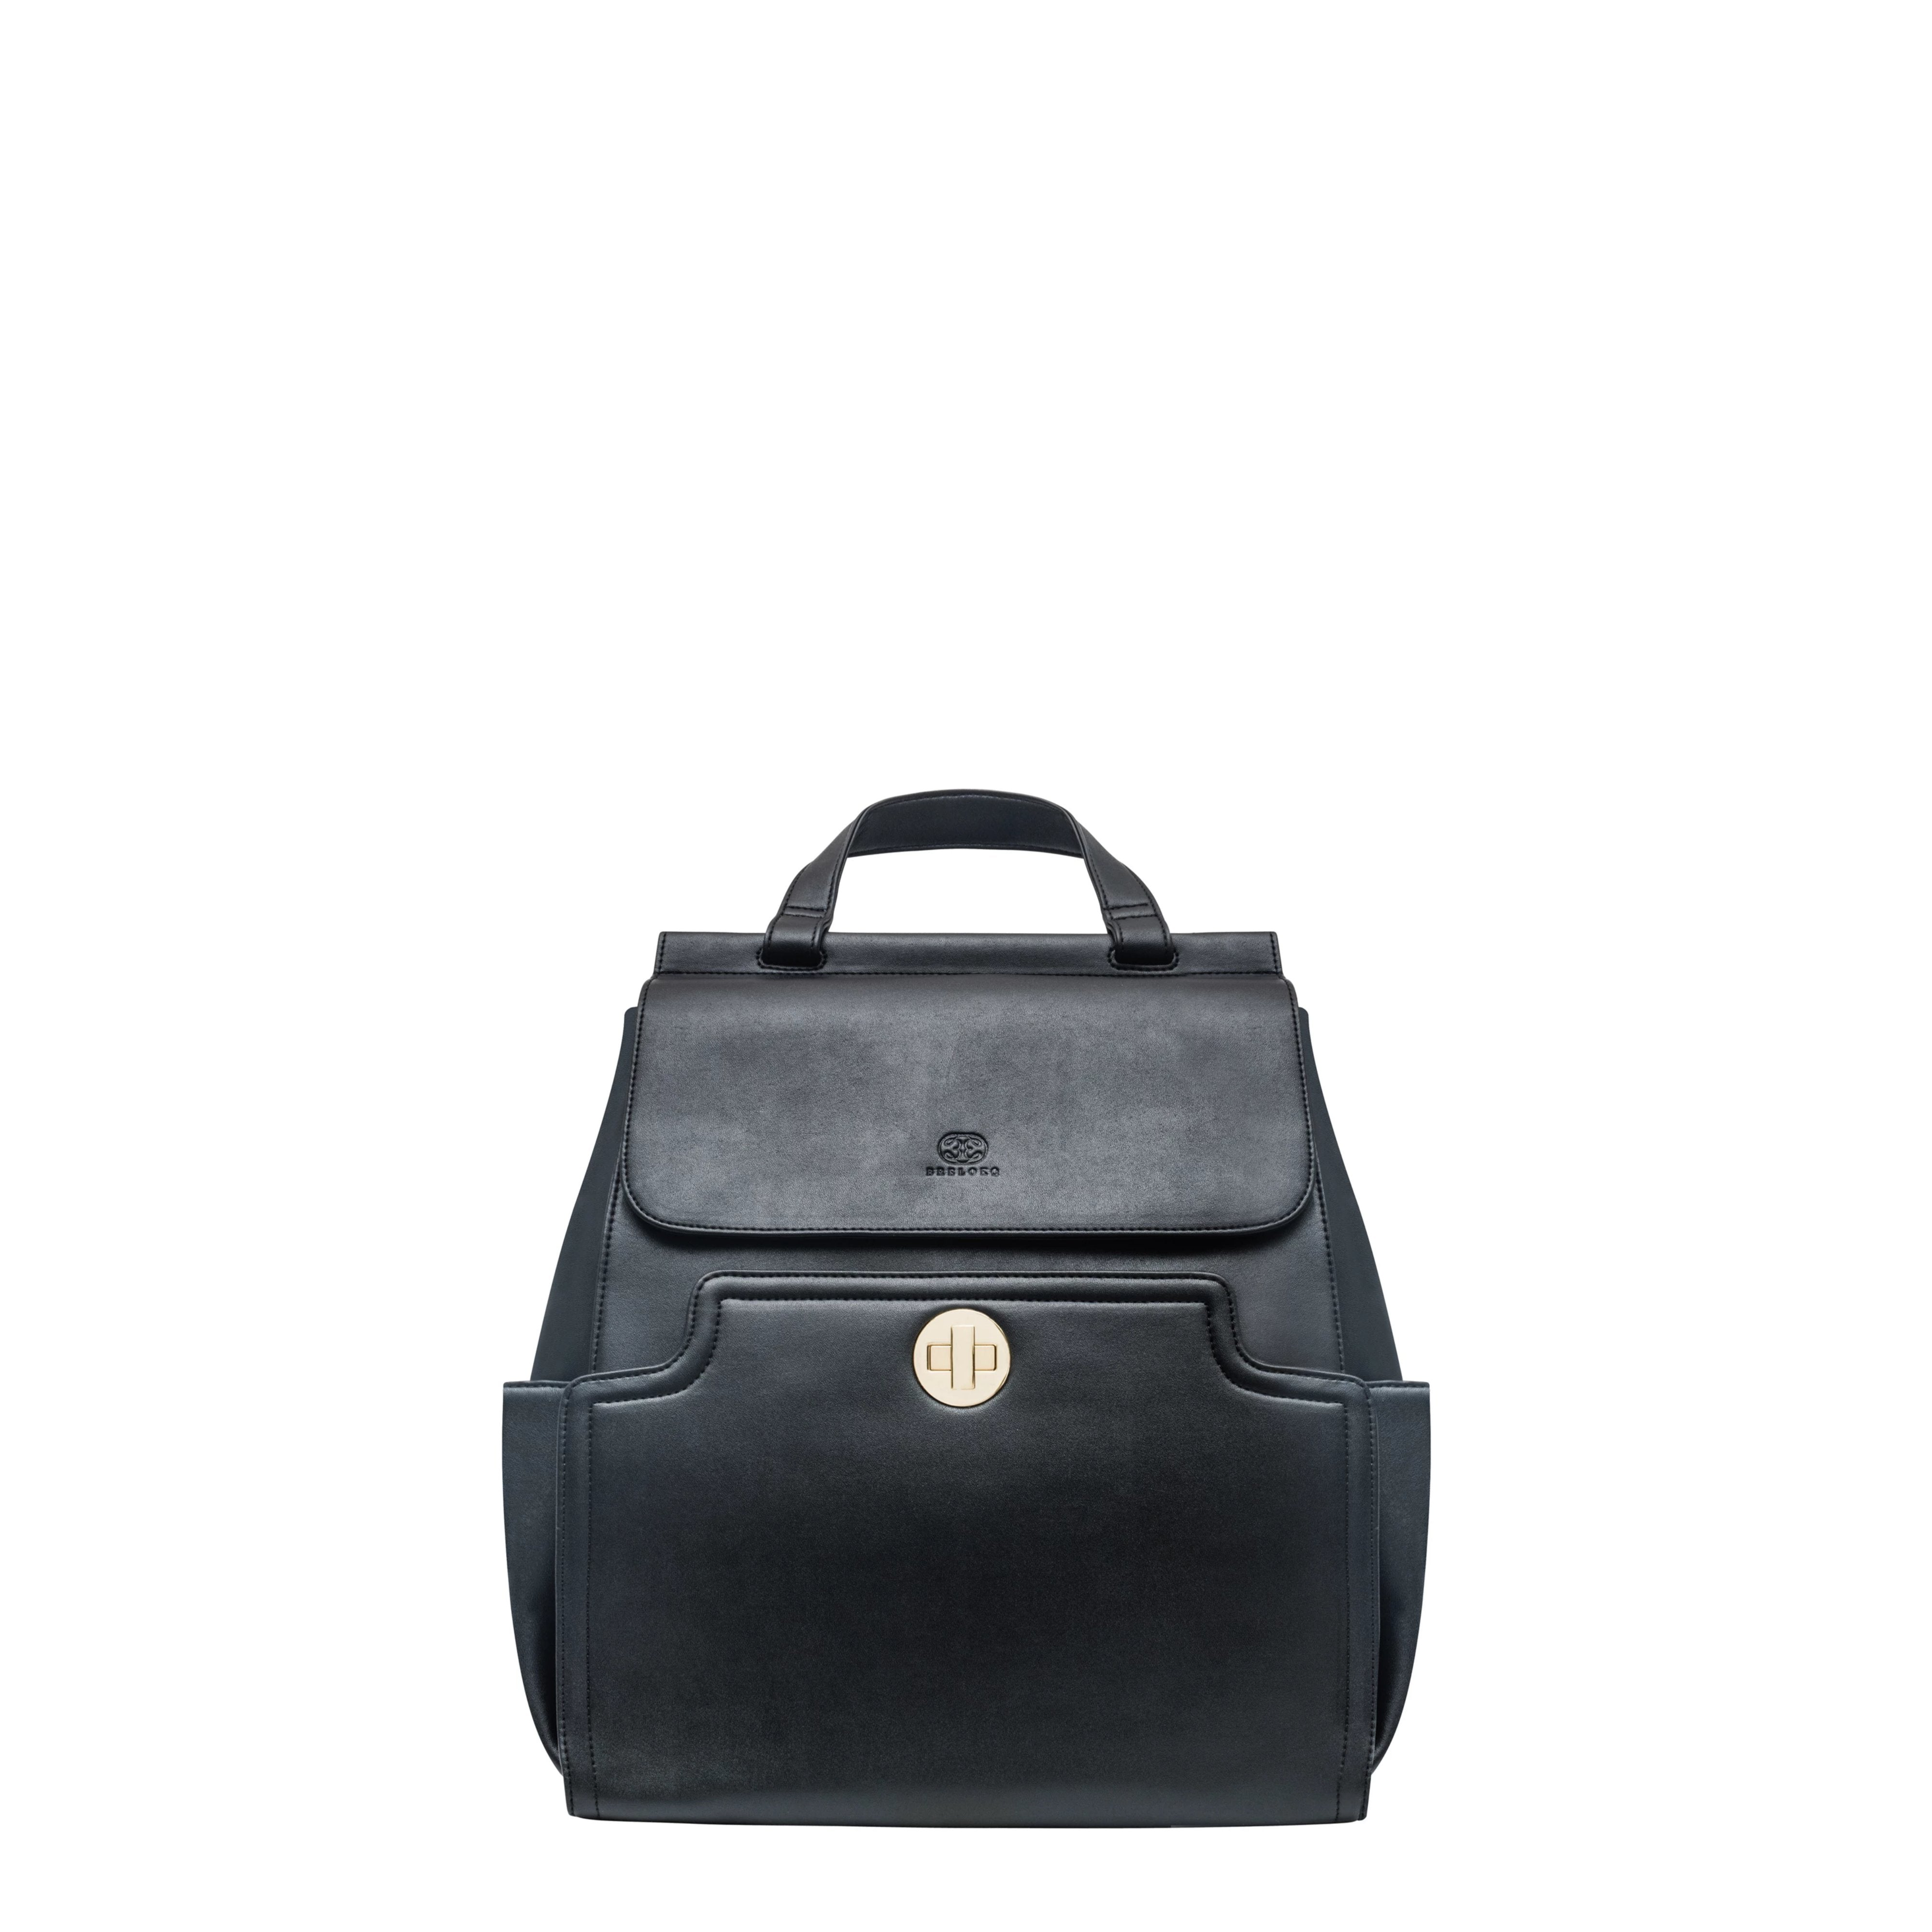 A vegan leather diaper bag with an Elegant look, like a designer bag with a changing pad integrated